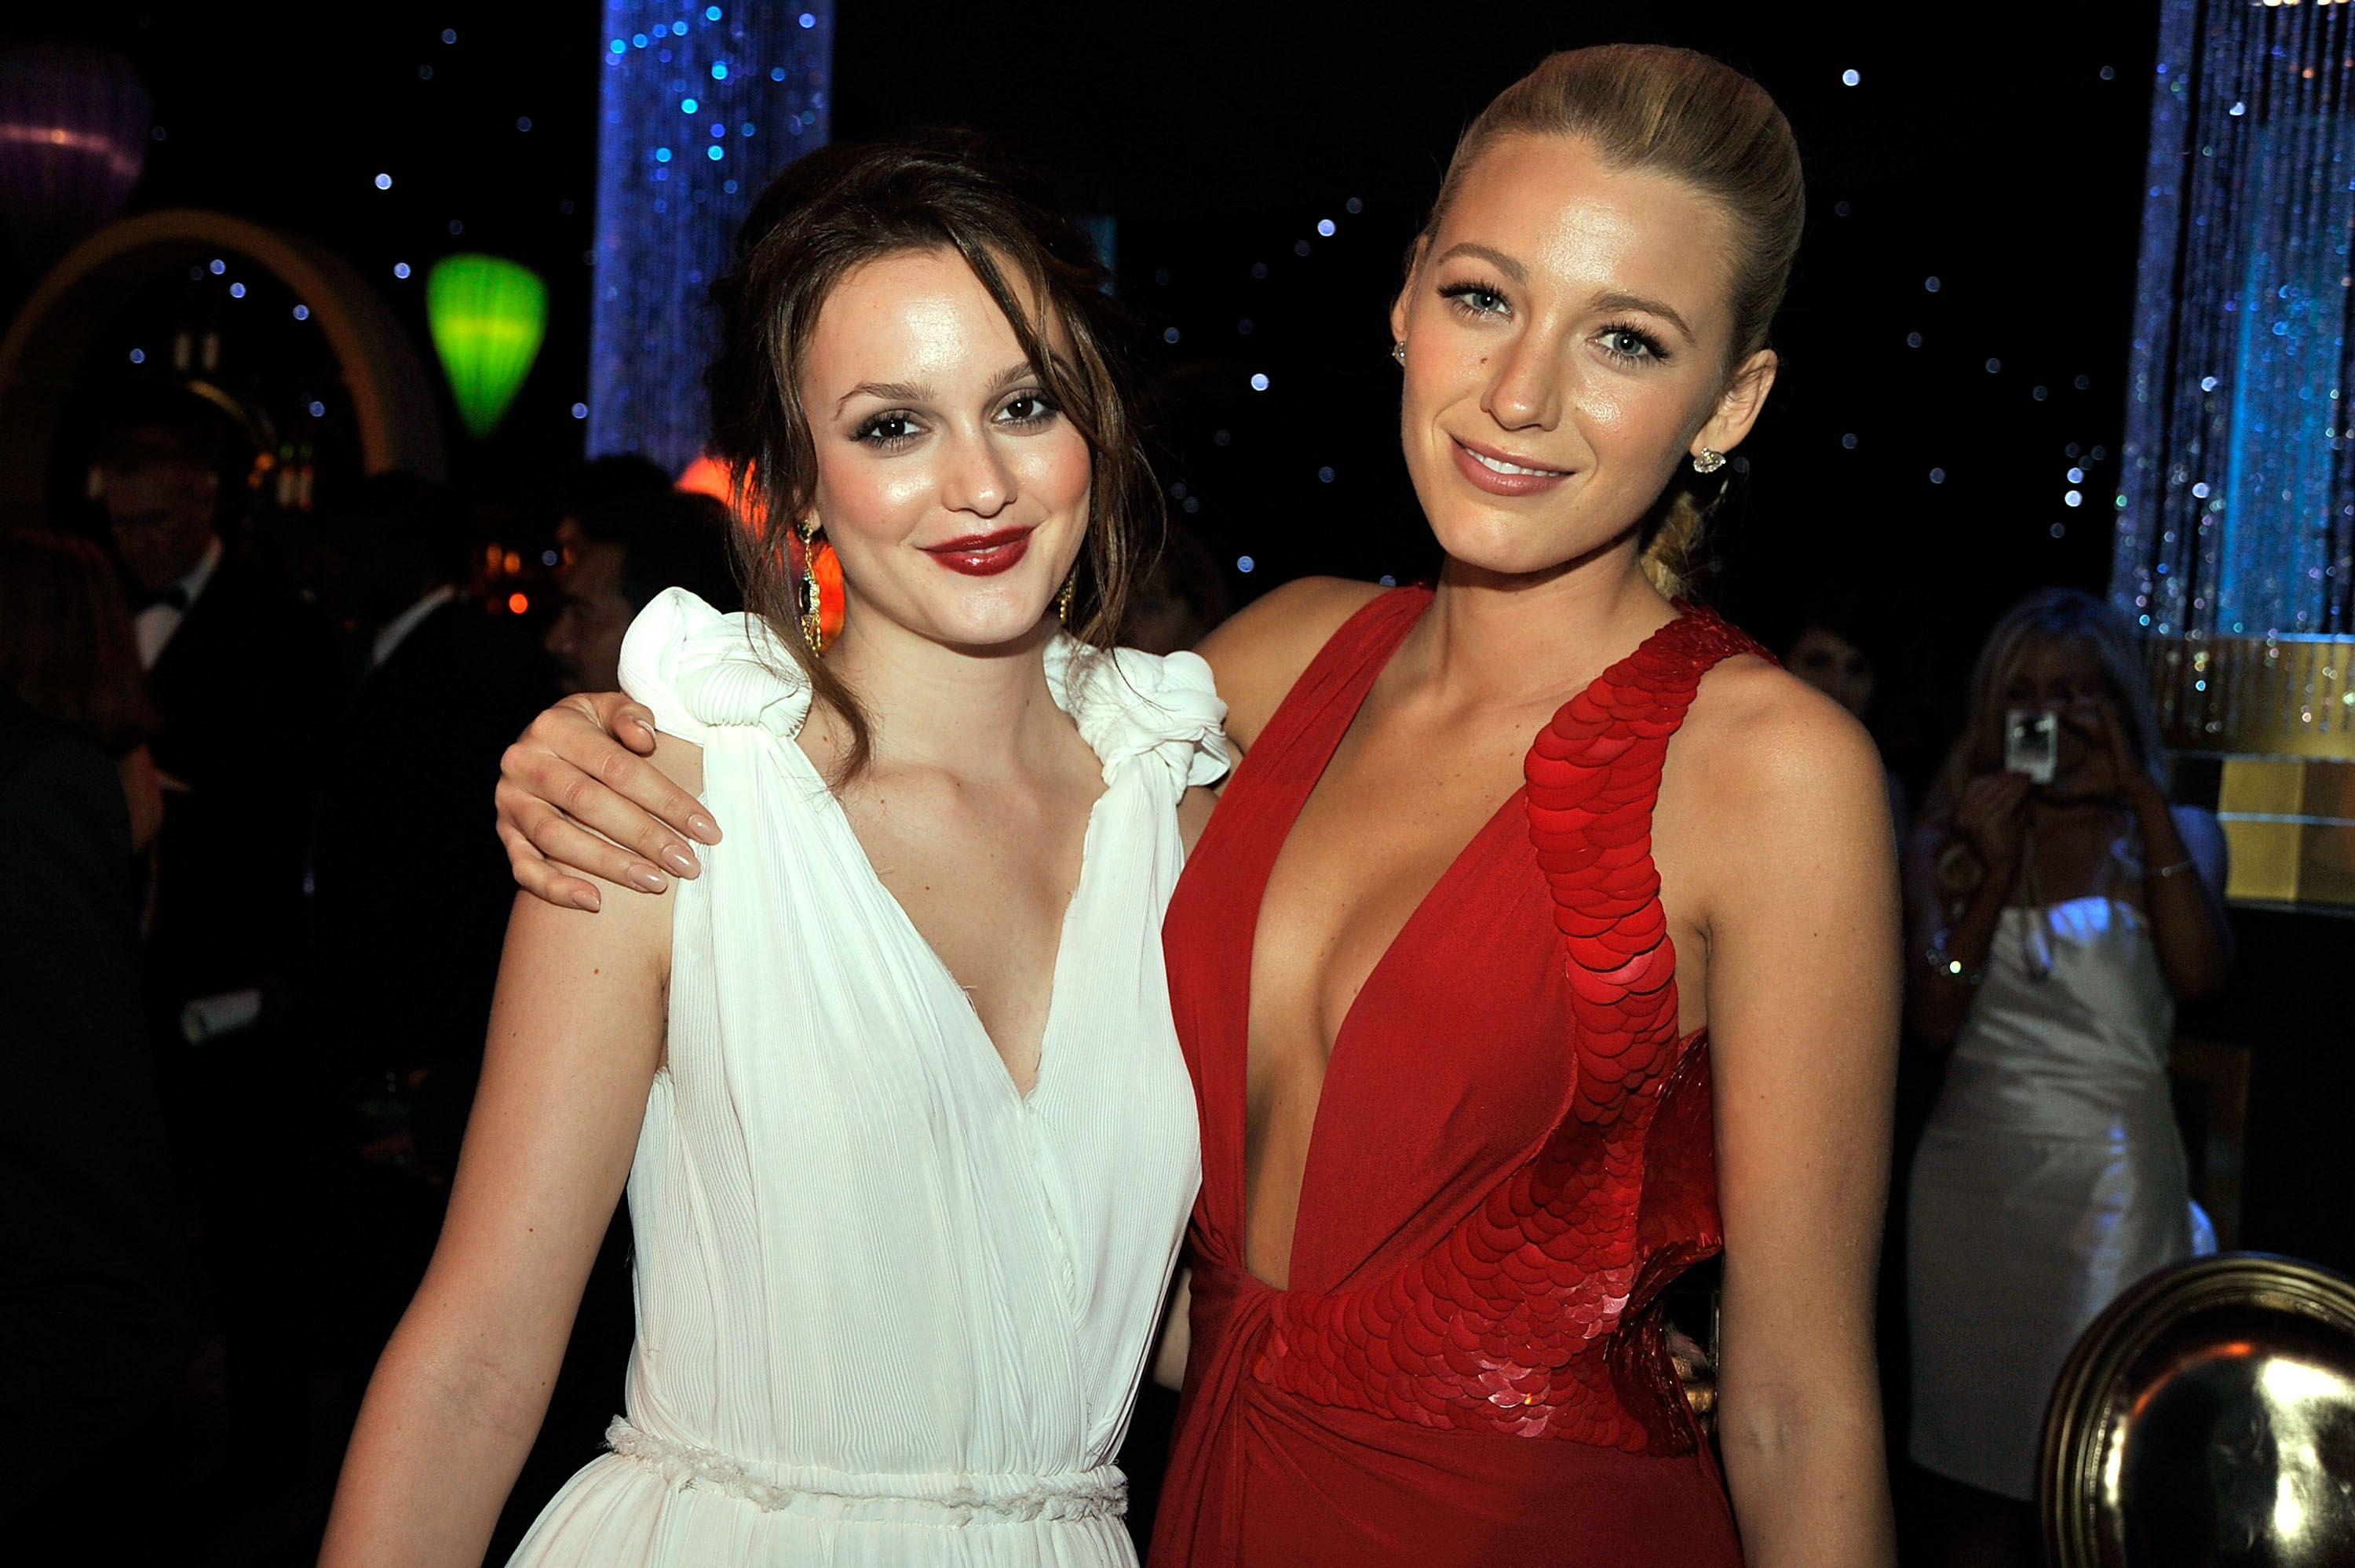 Blake Lively gets nostalgic over Gossip Girl with an Emmys throwback